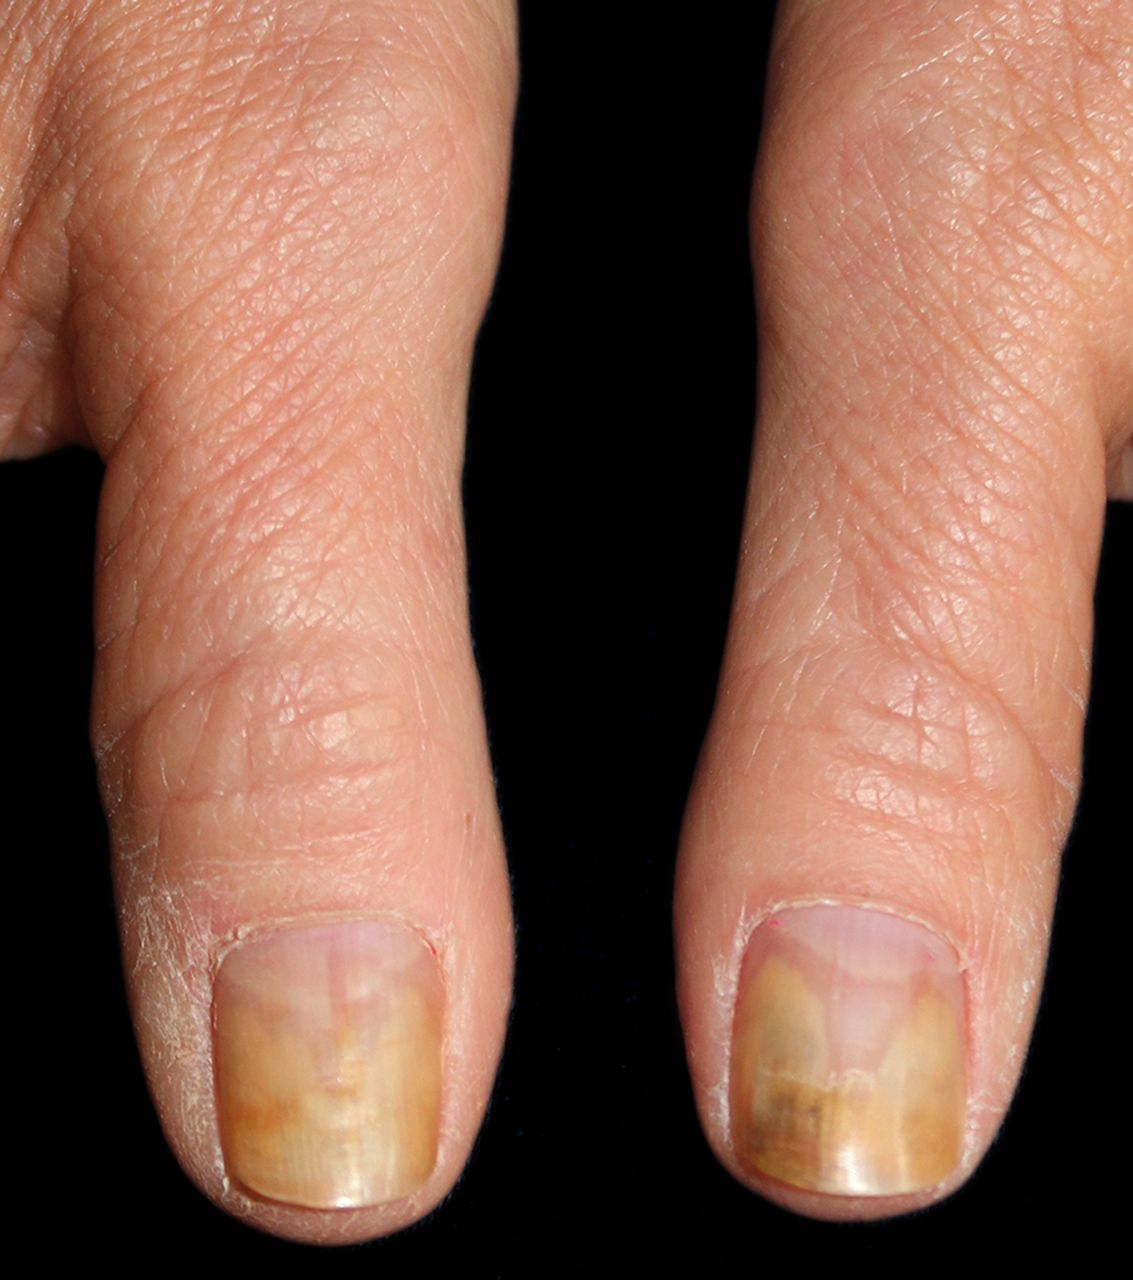 Fungal Nail Infection Diagnosis And Management